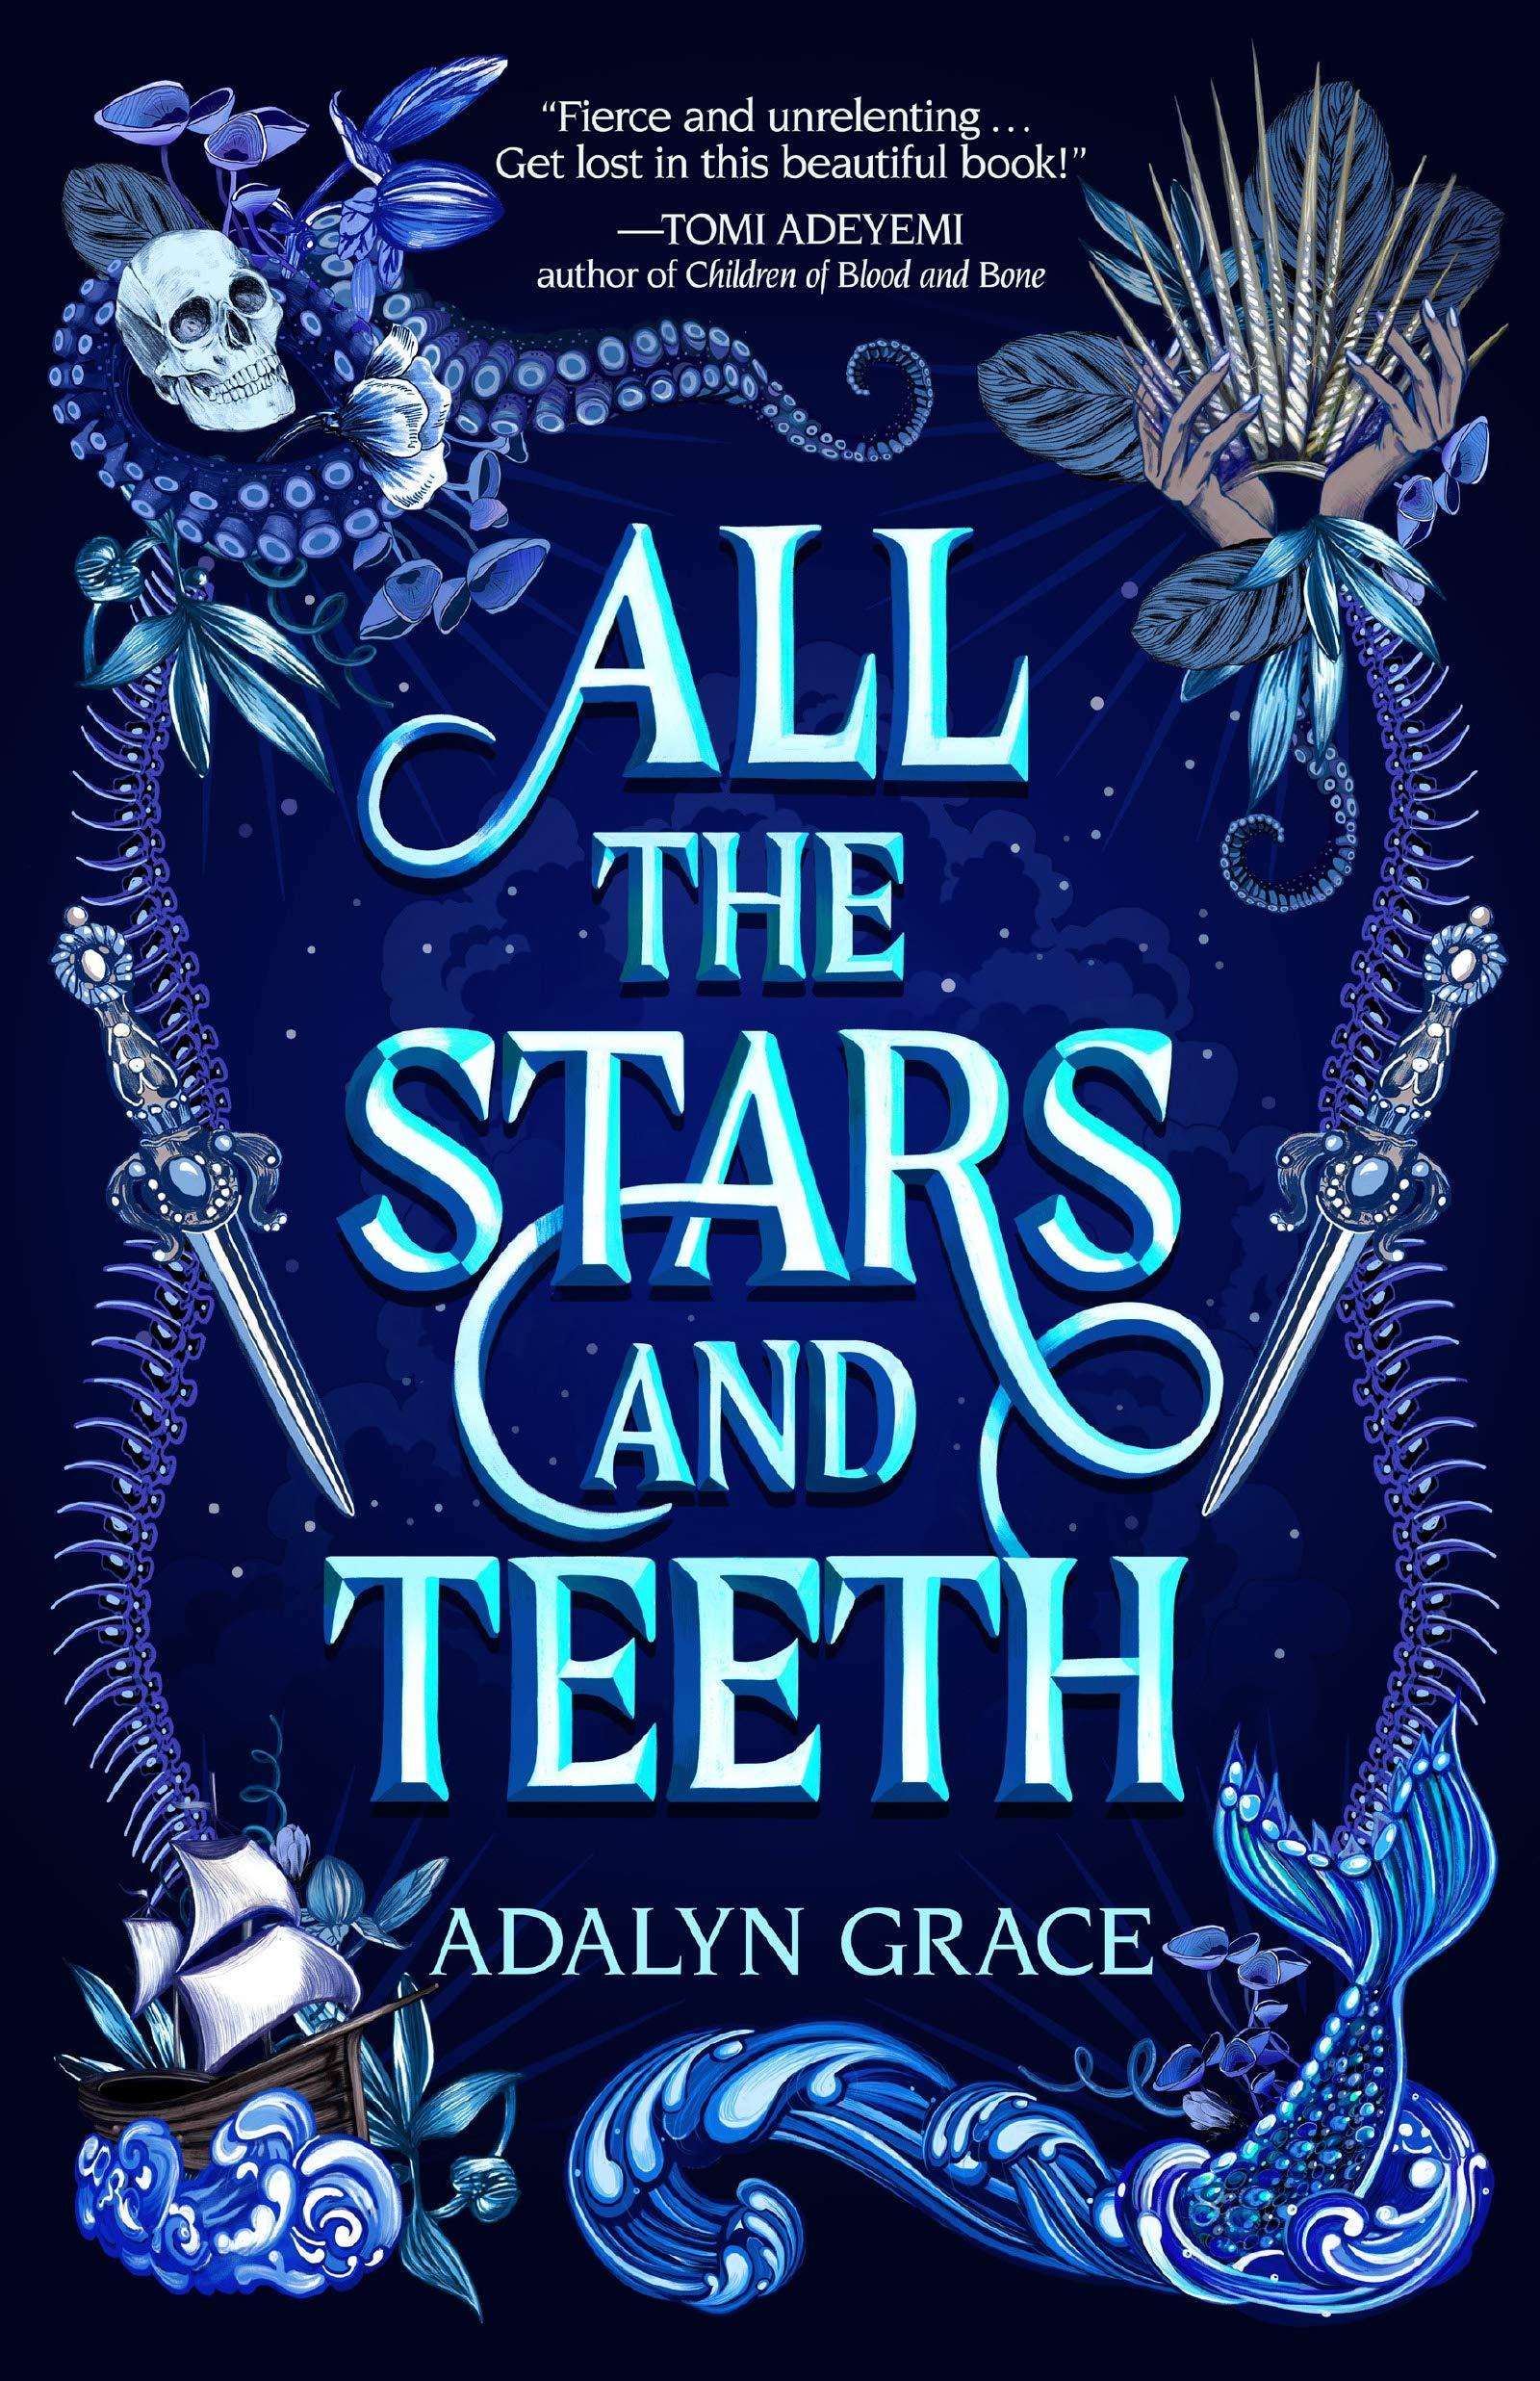 Amazon.com: All the Stars and Teeth (All the Stars and Teeth Duology, 1)  (9781250307781): Grace, Adalyn: Books